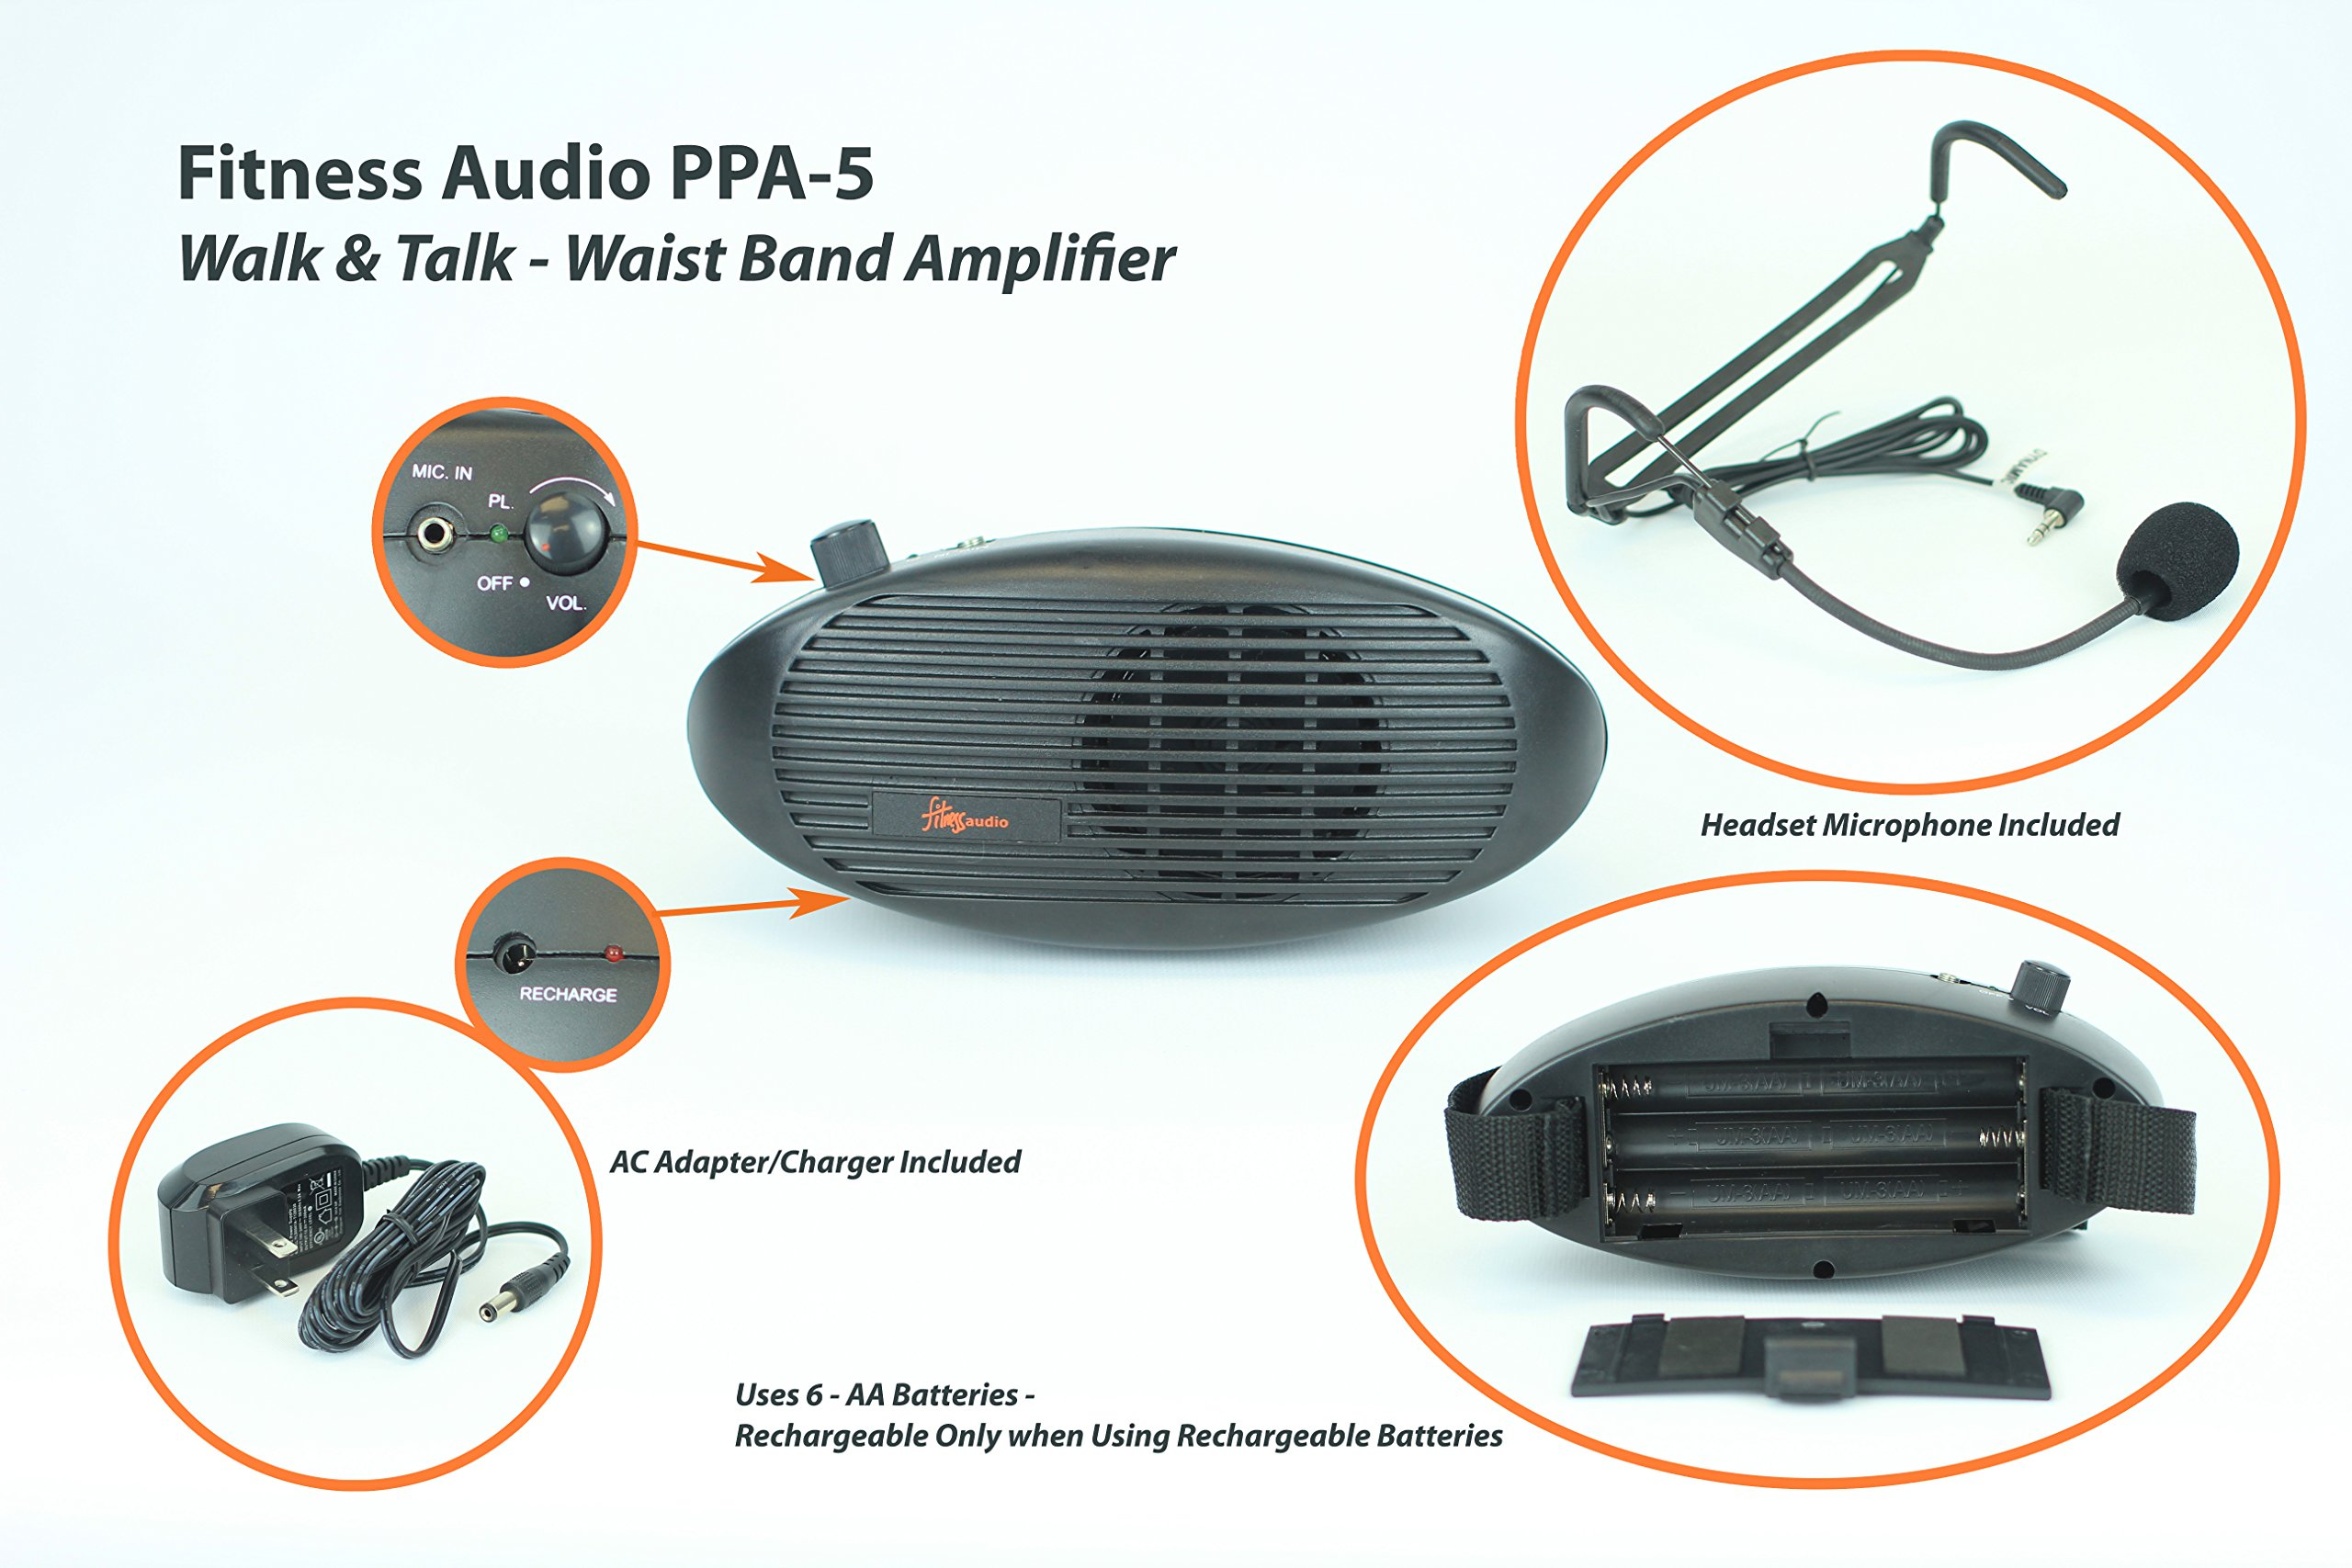 Fitness Audio PPA-5